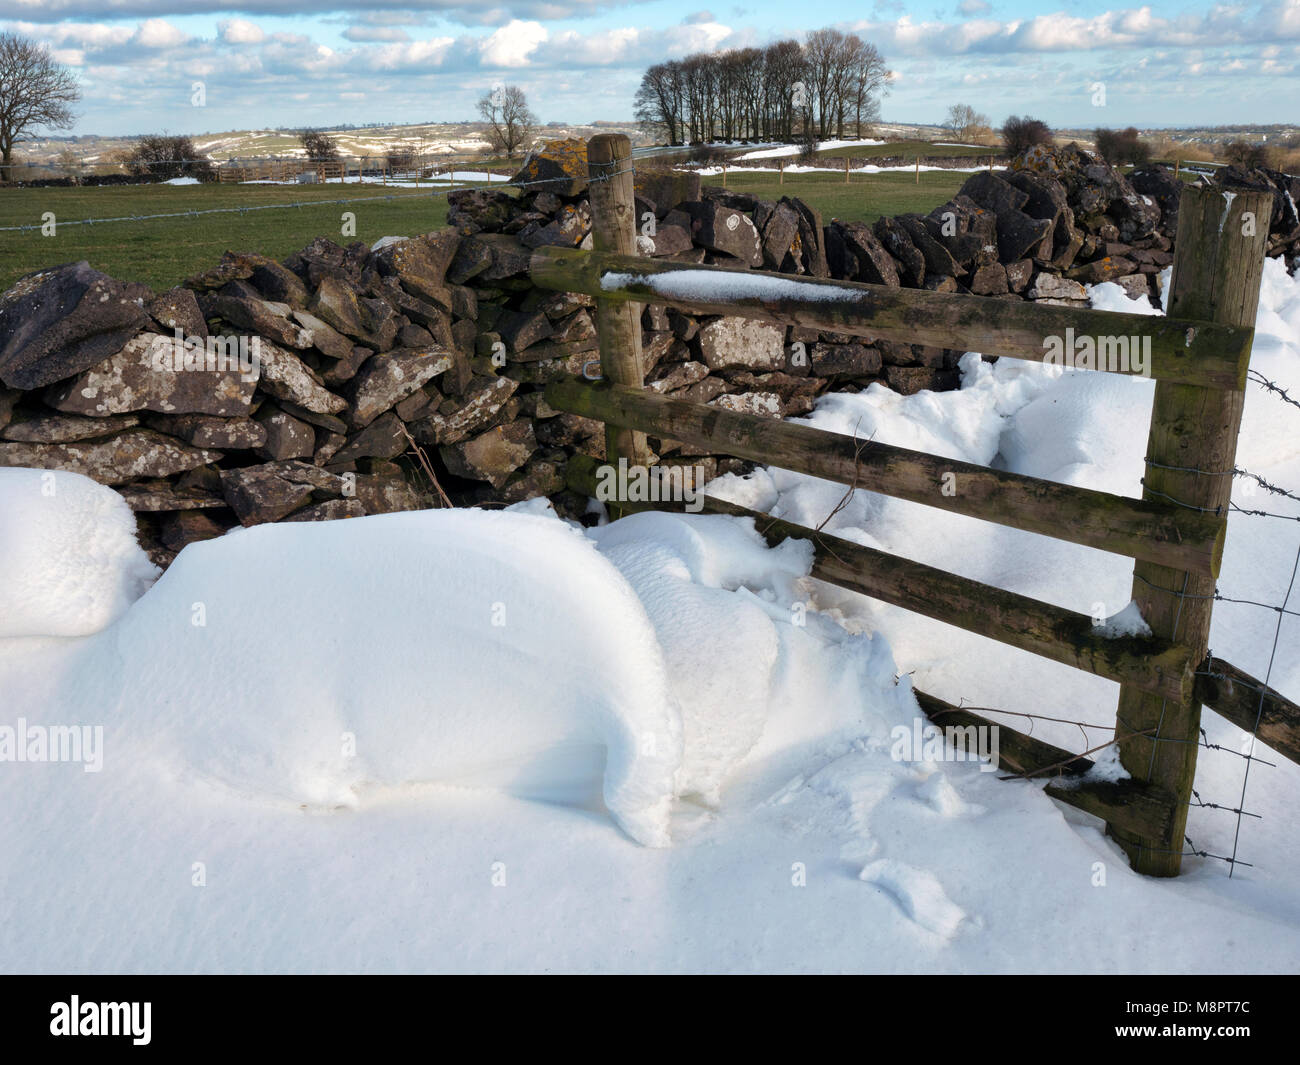 Tissington, Peak District National Park, Derbyshire, UK. 19th March, 2018. UK Weather: The last of the drifted snowStock Photo